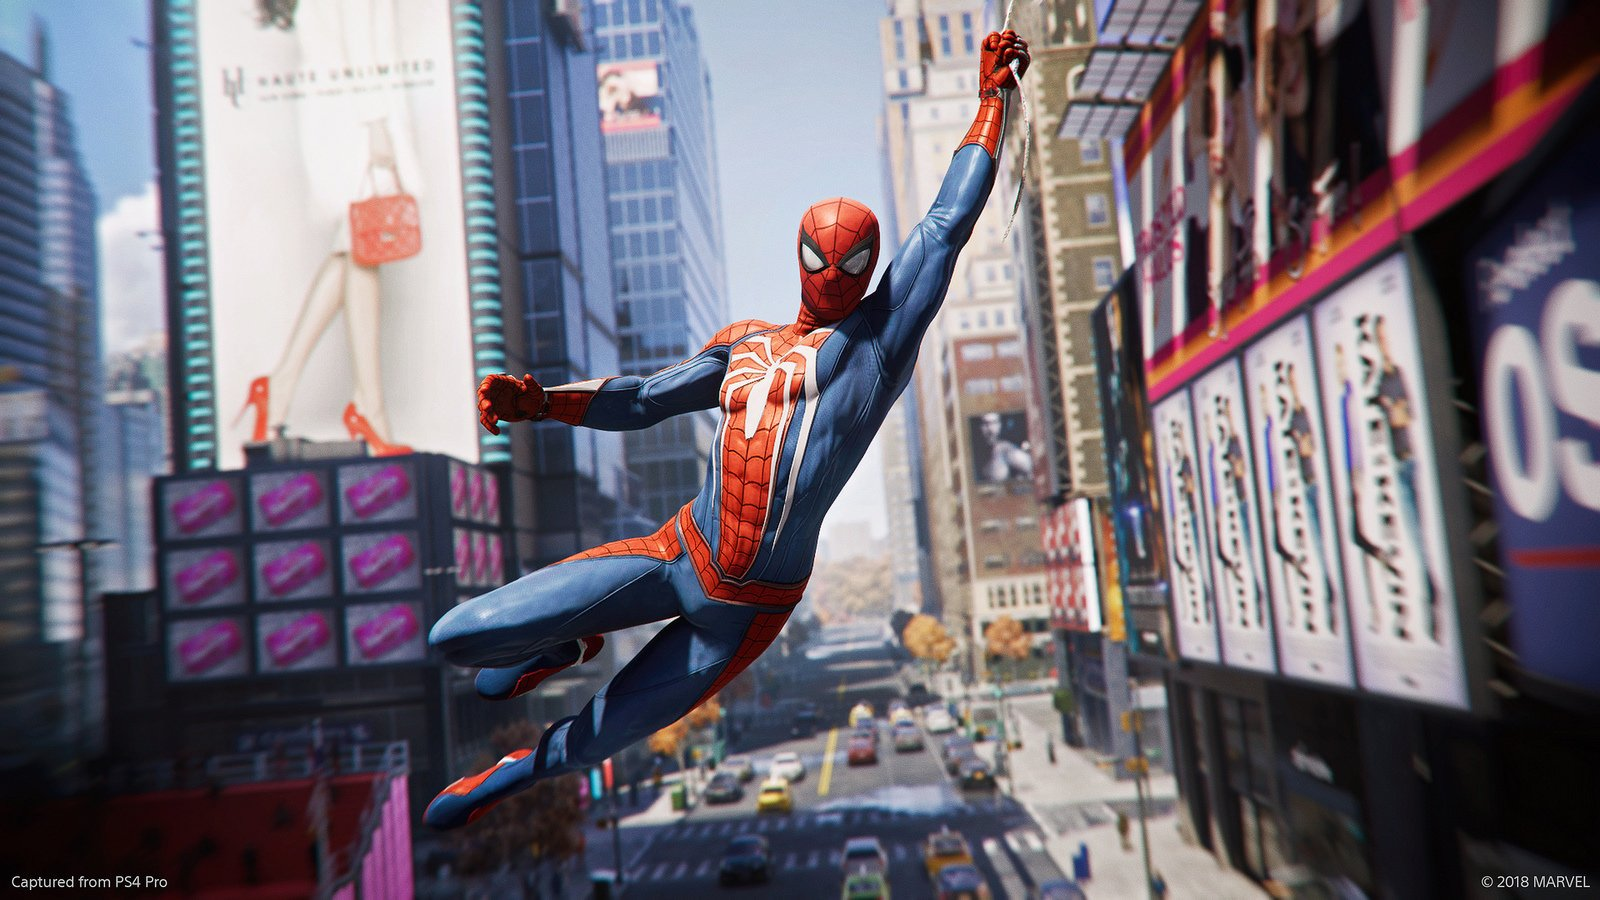 It's giveaway time again! Win Marvel's Spider-Man on PS4